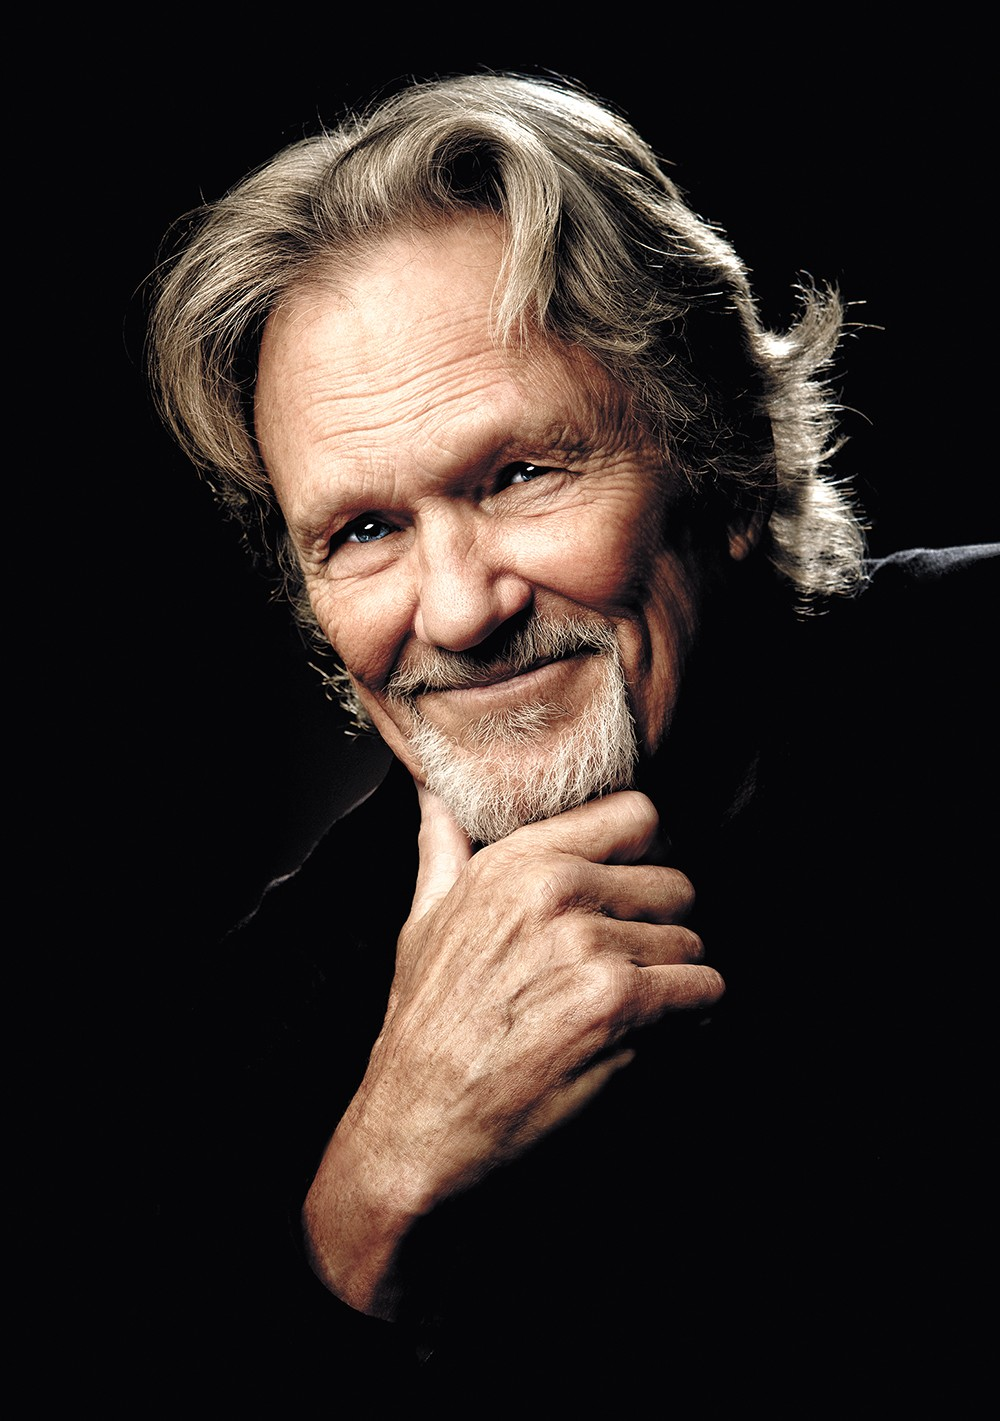 A look at Kris Kristofferson's career as one of the